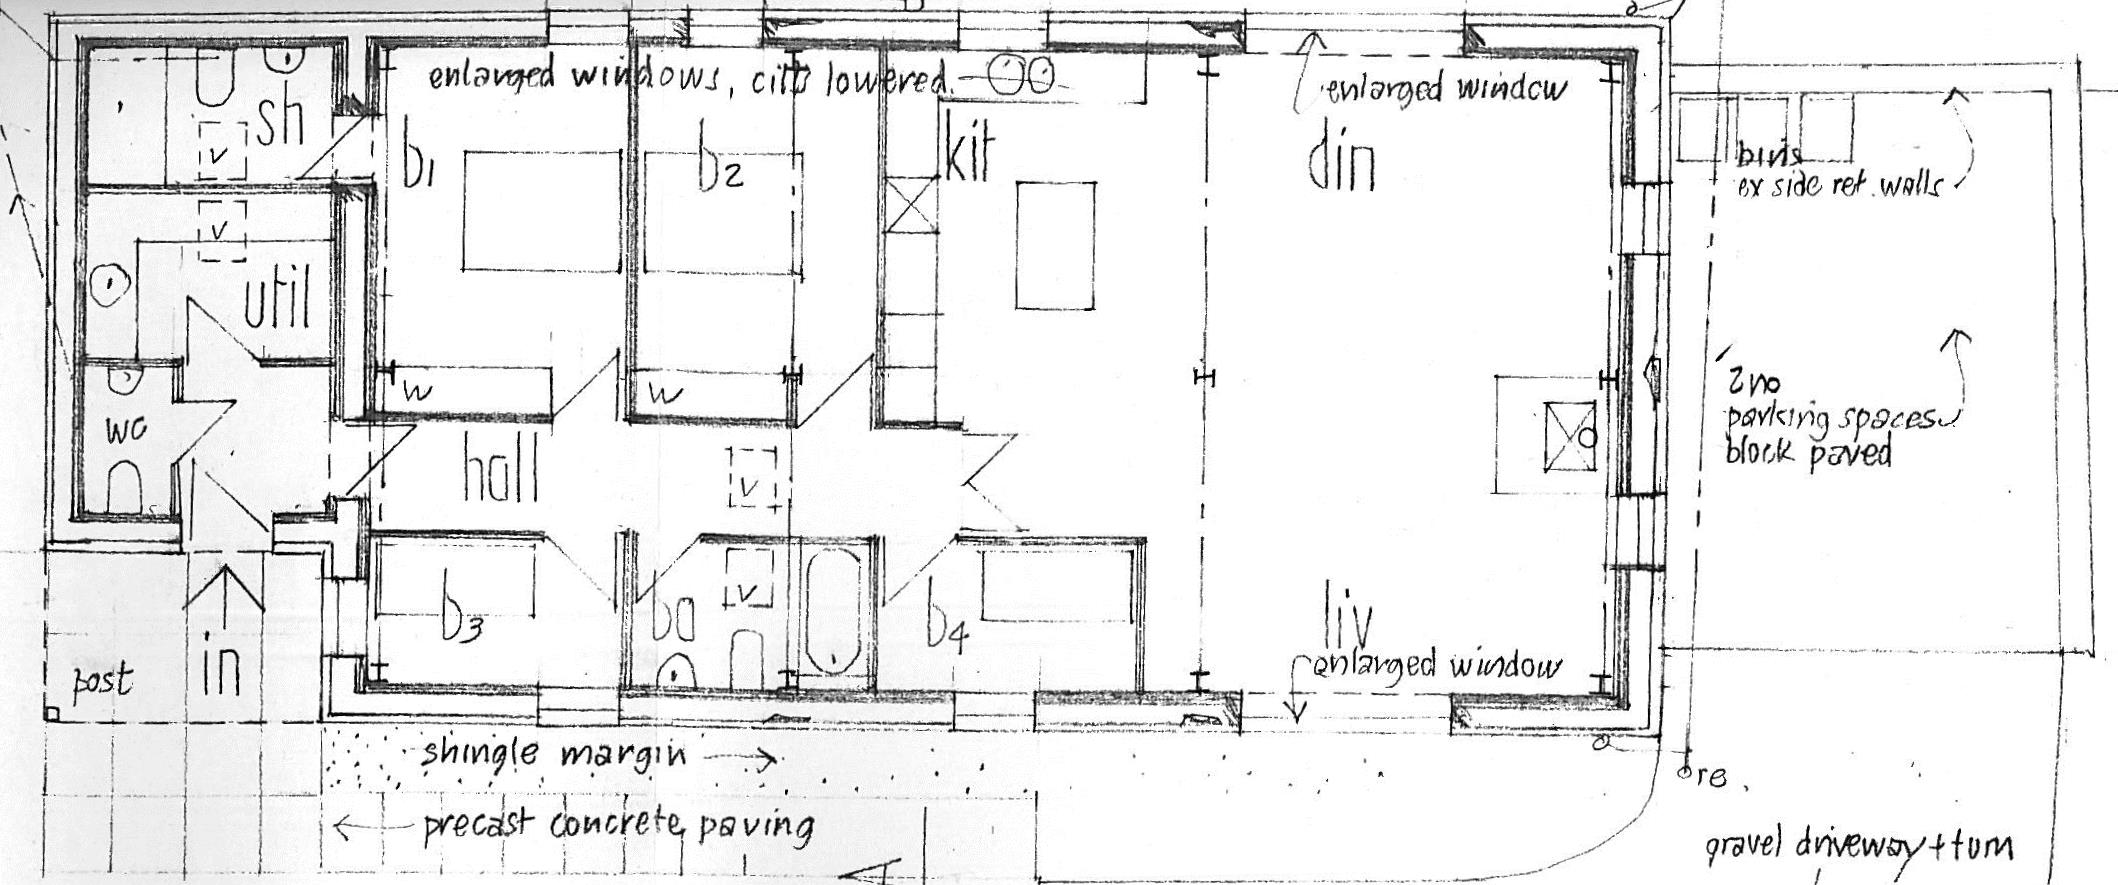 piggery house construction design details agriculture